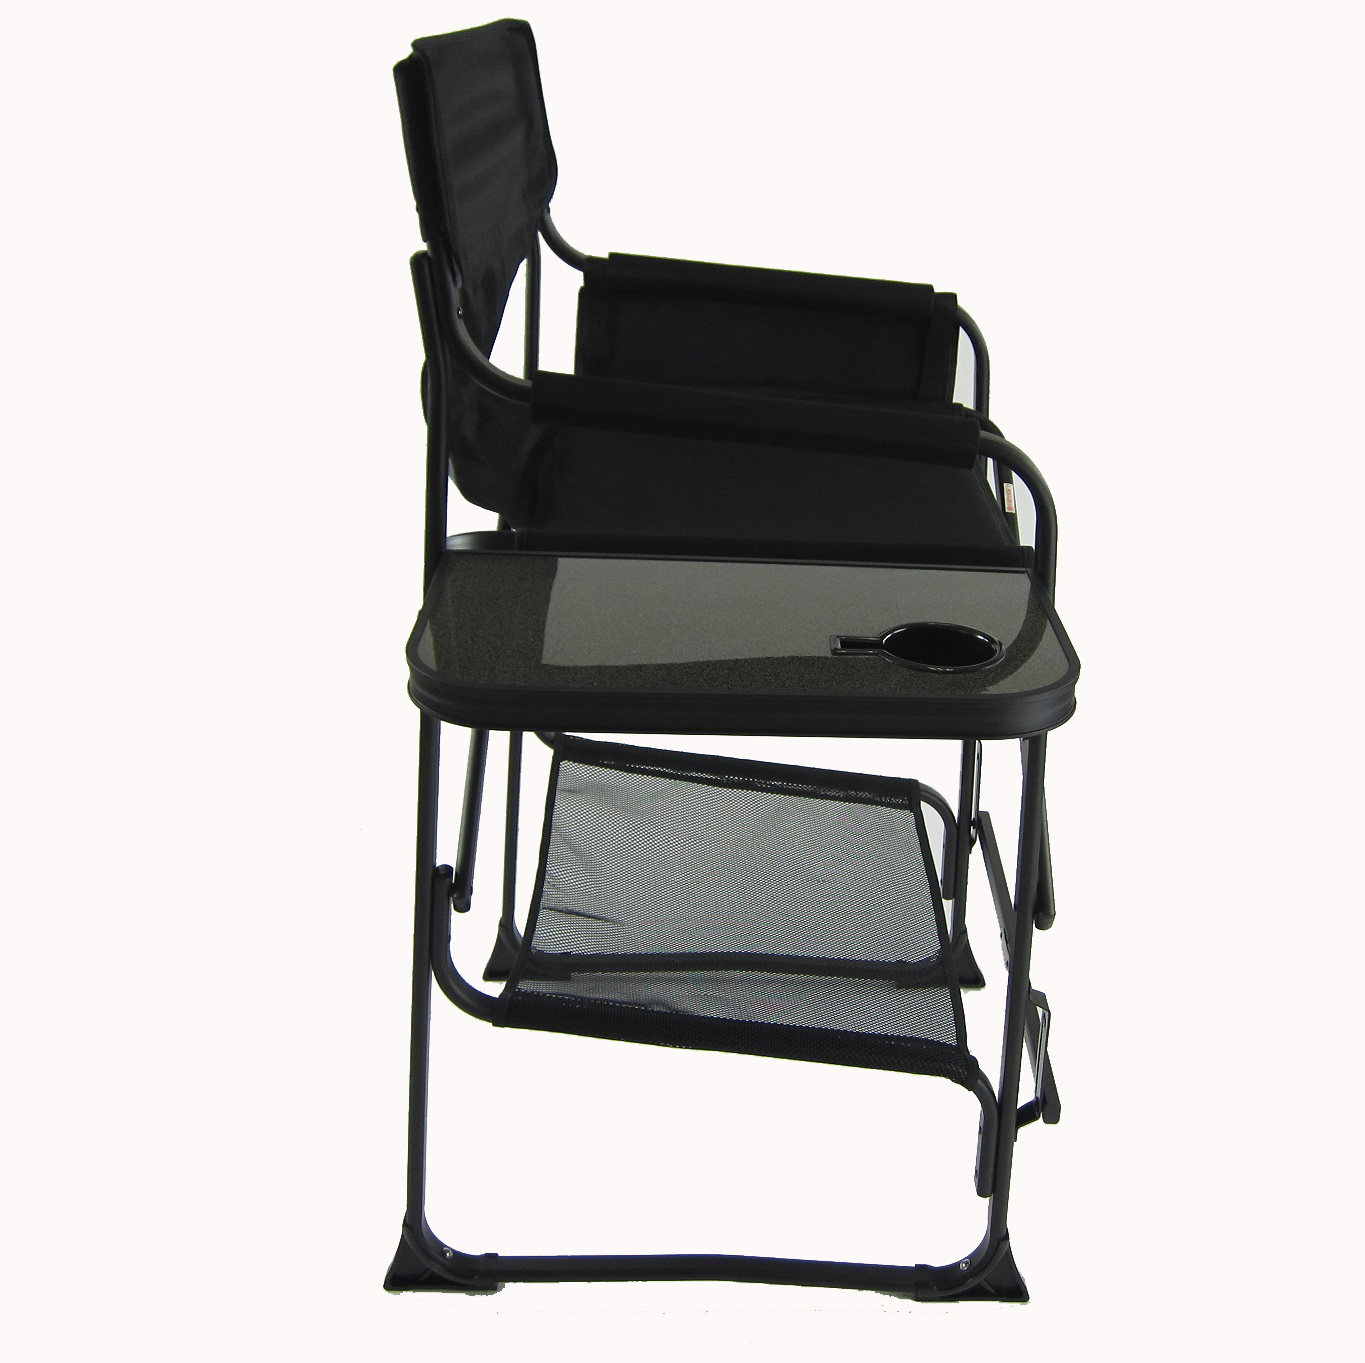 make up chair wheelchair dimension free name logo tuscanypro quotbig daddy quot oversized heavy